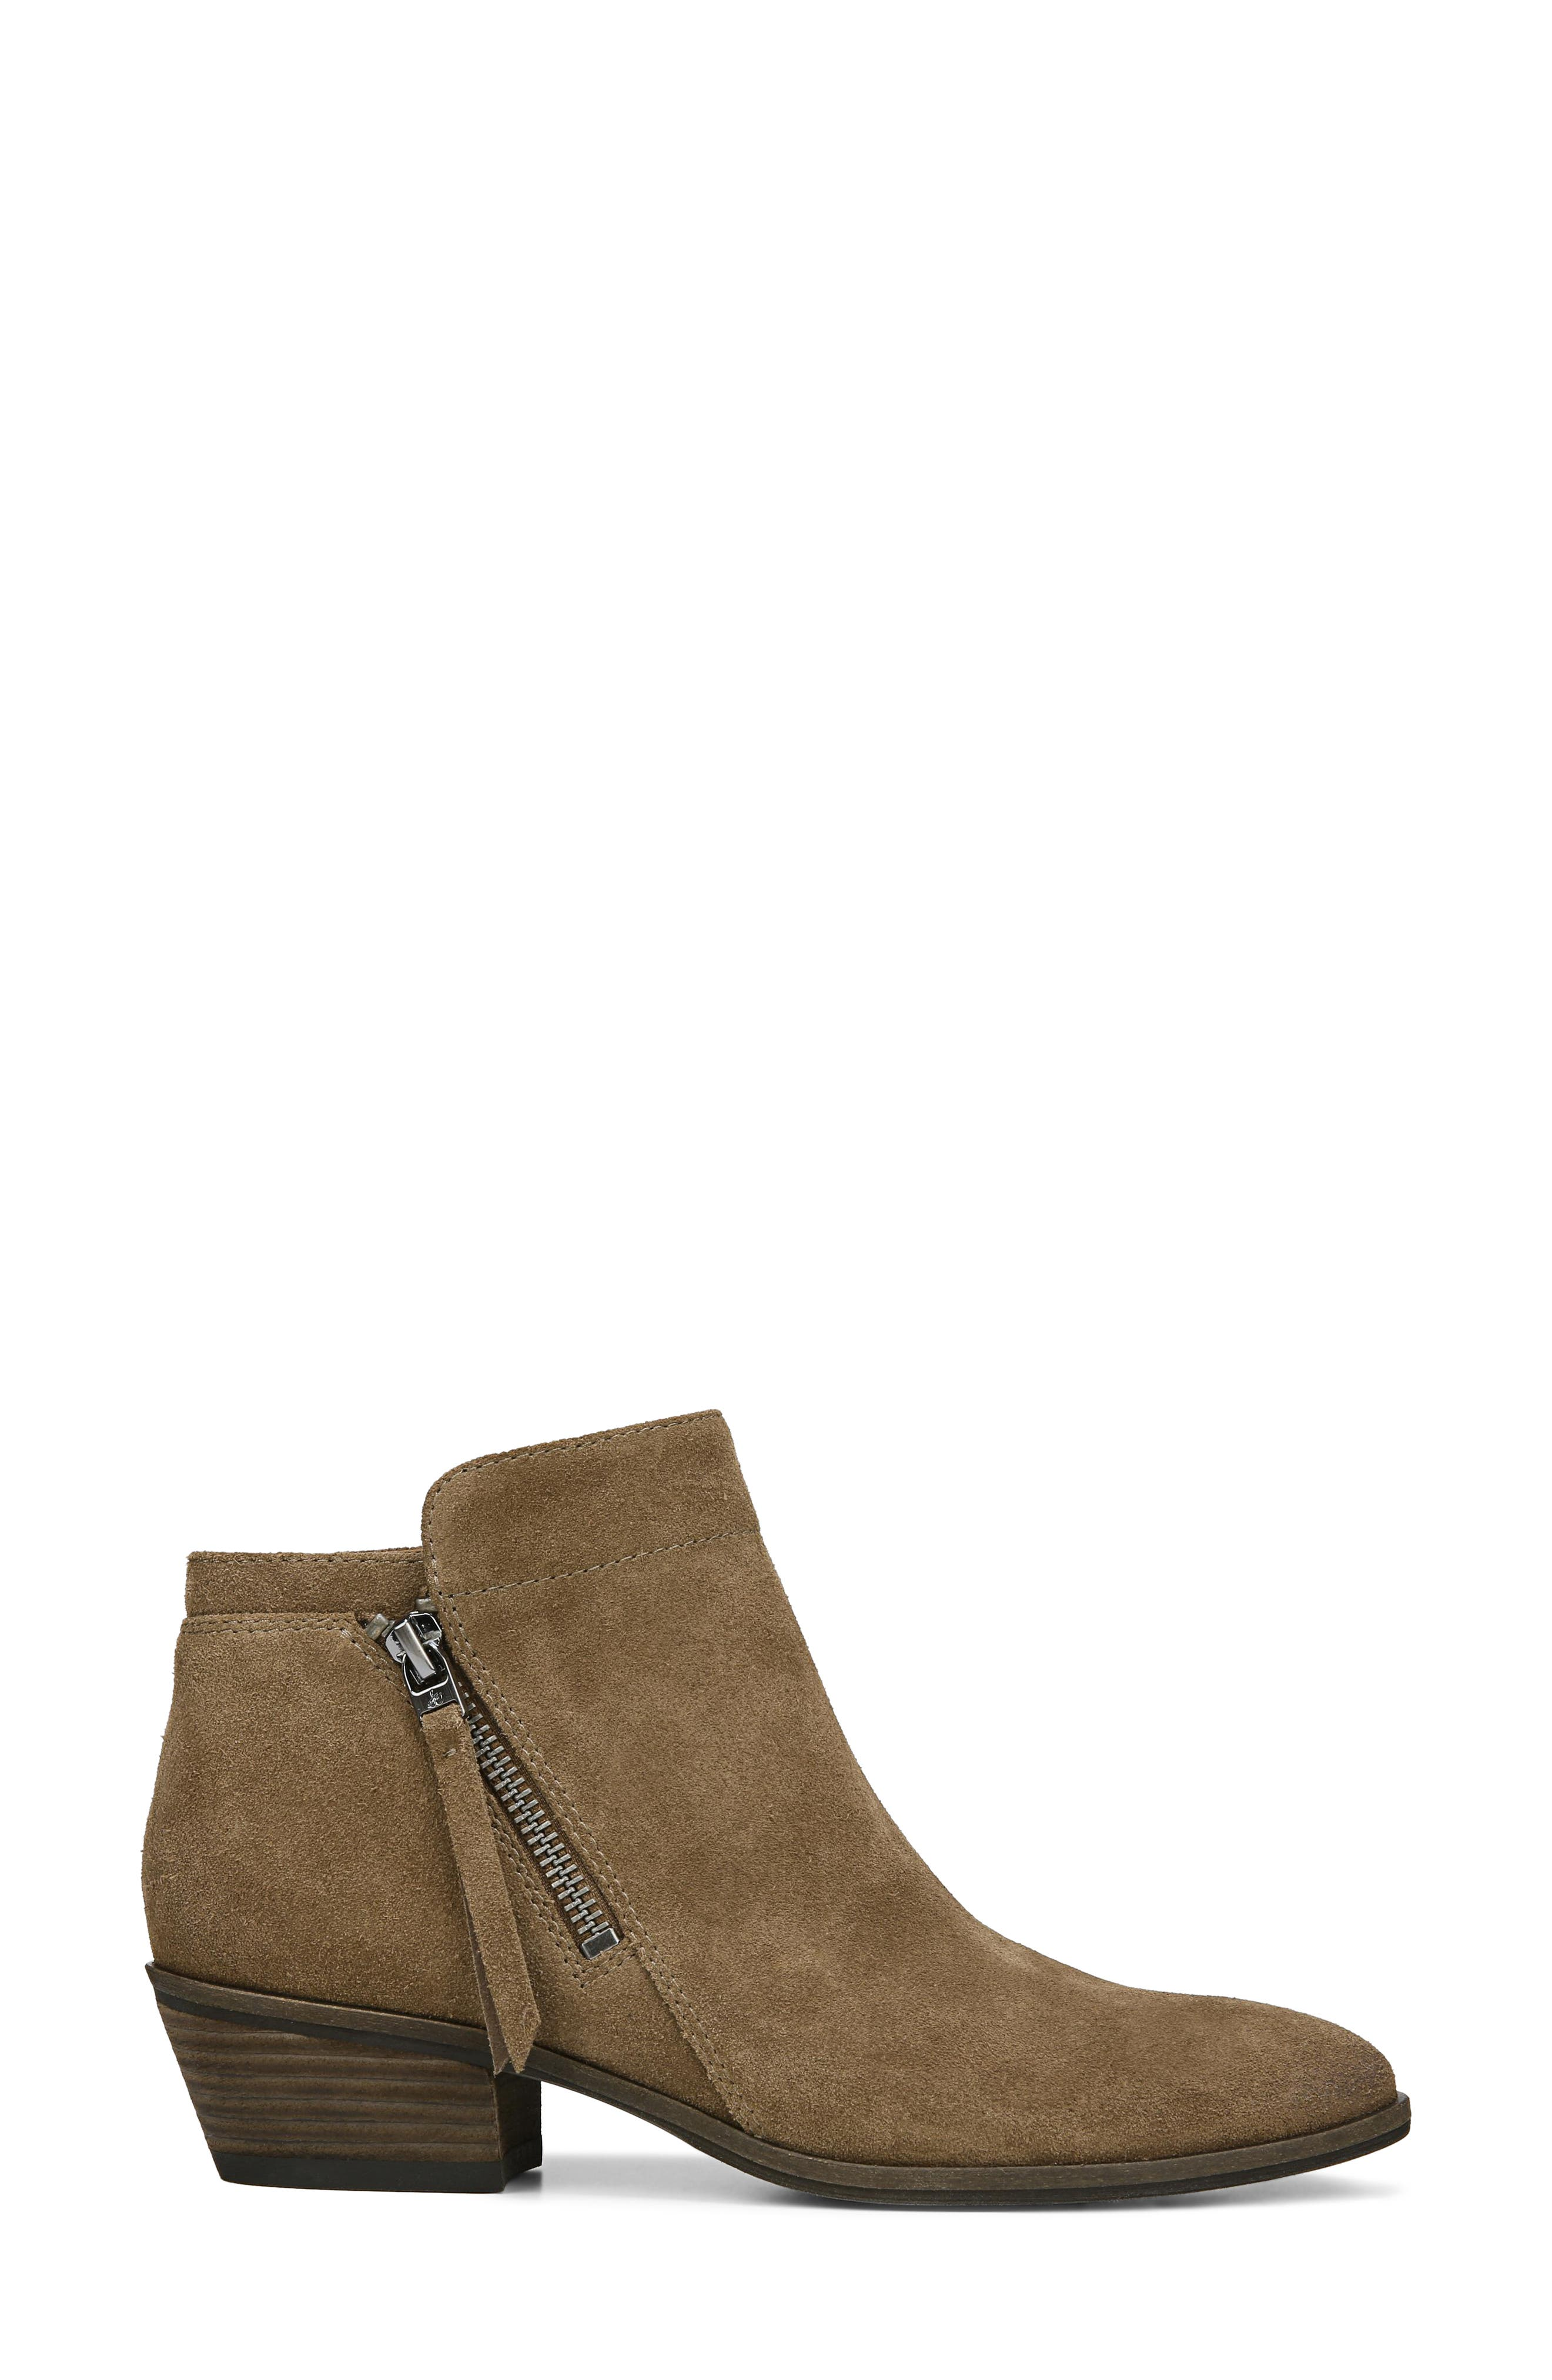 Packer Bootie,                             Alternate thumbnail 3, color,                             DARK TAUPE SUEDE LEATHER